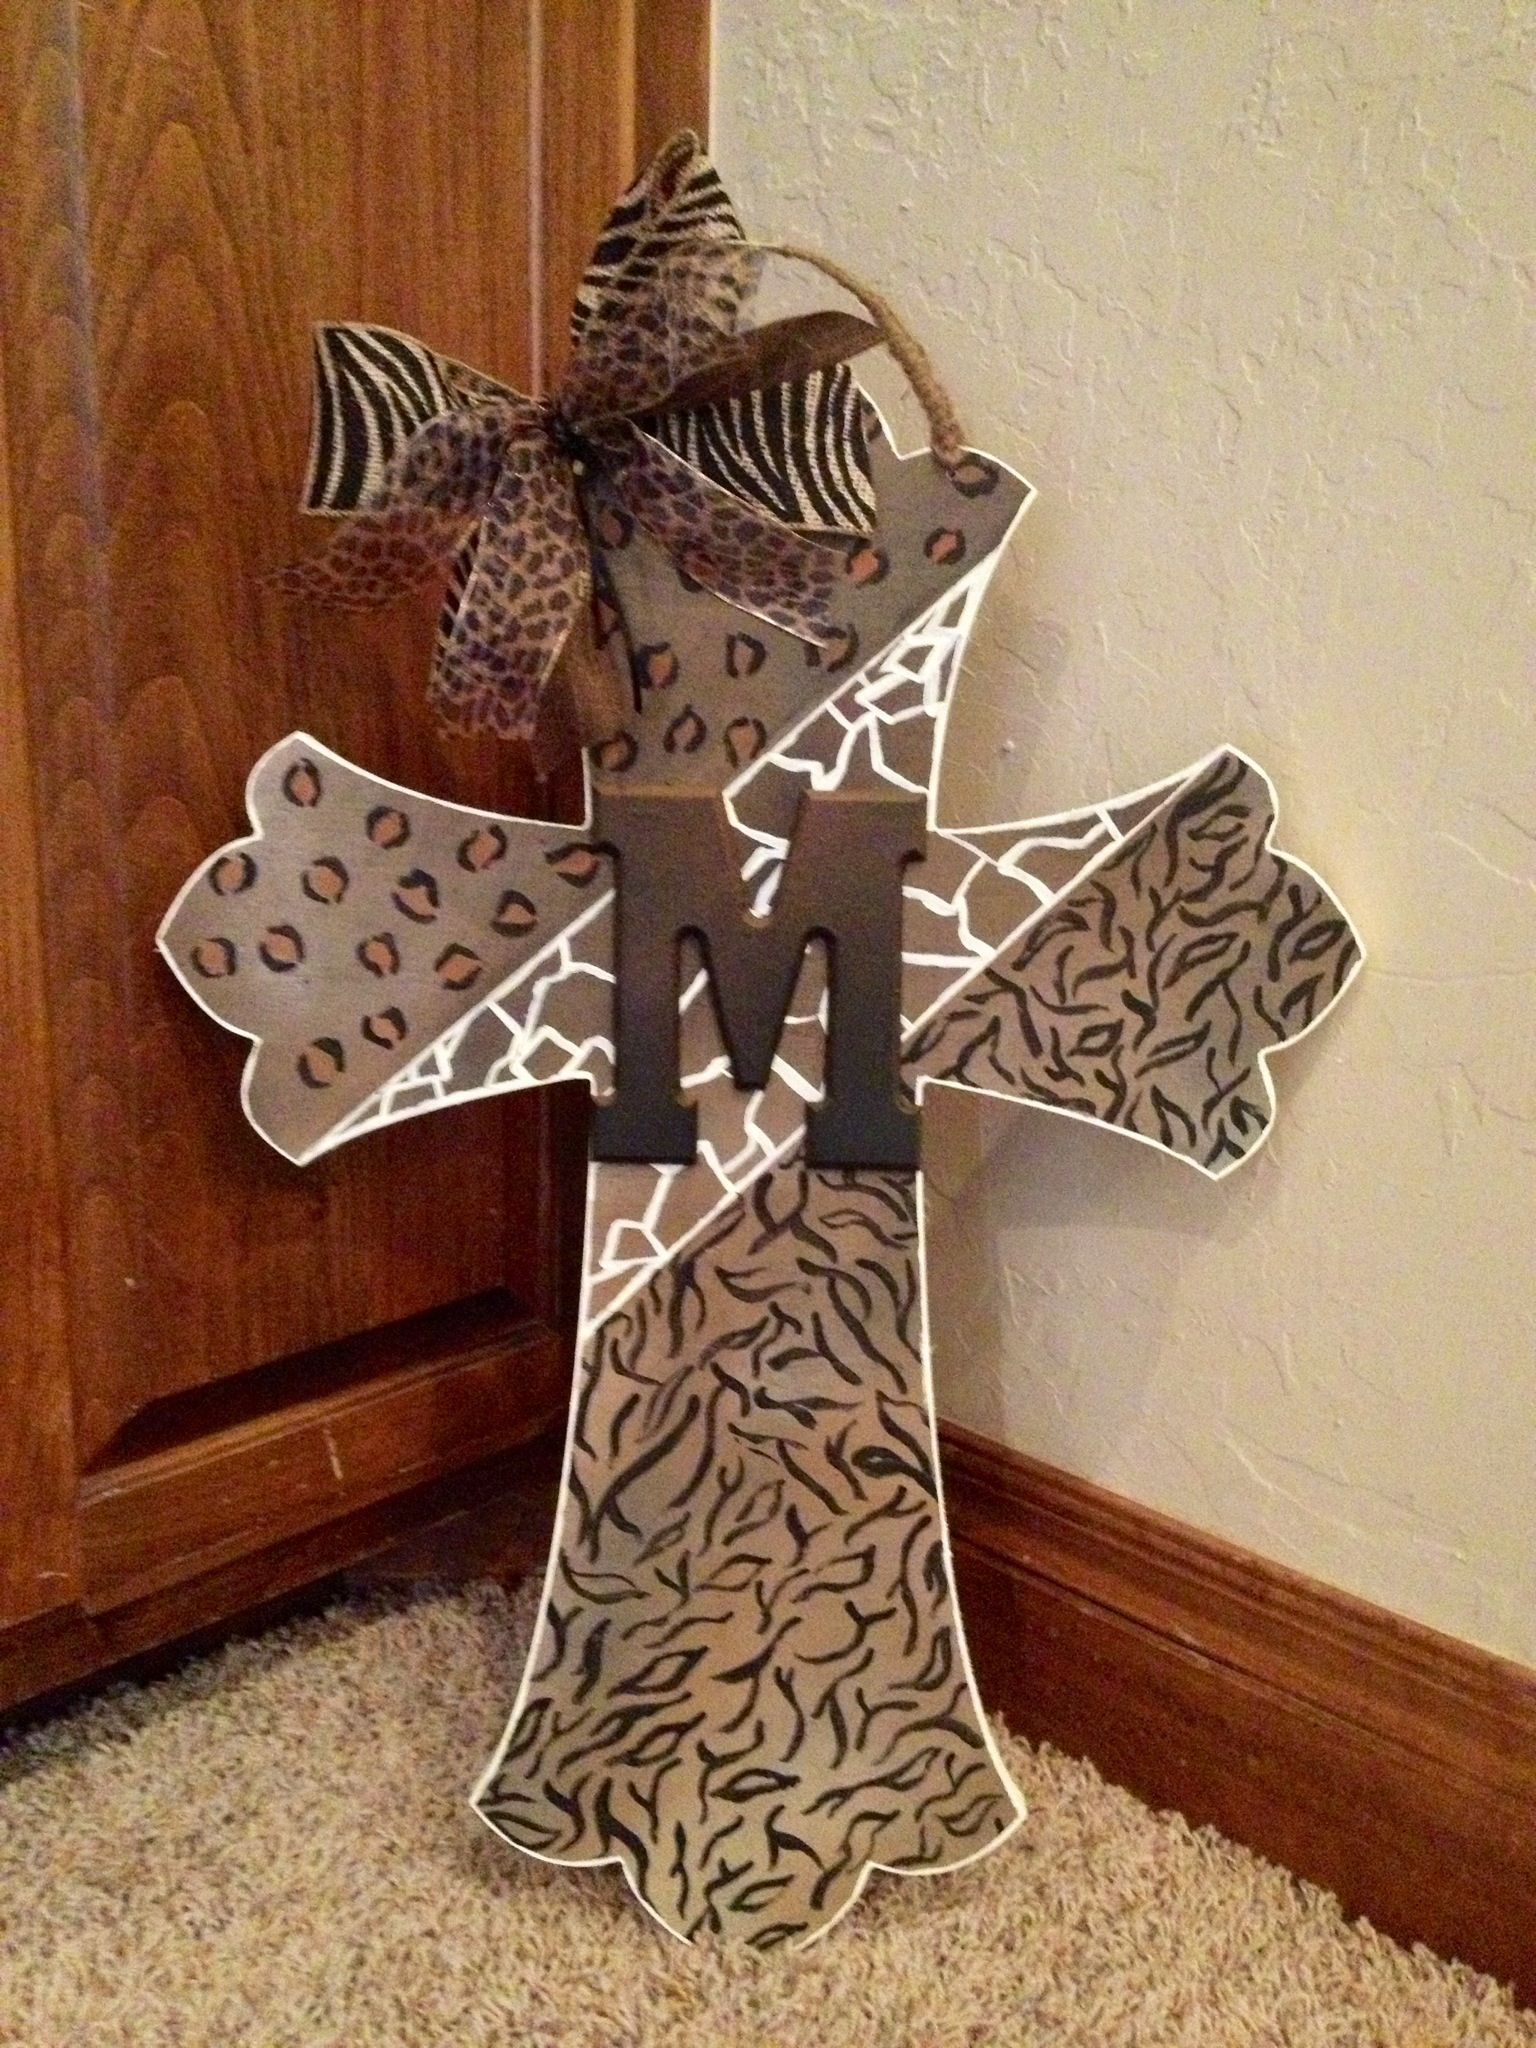 Pin By Lisa Ritter On Crafts And Things Cross Wall Decor Crosses Decor Cross Crafts